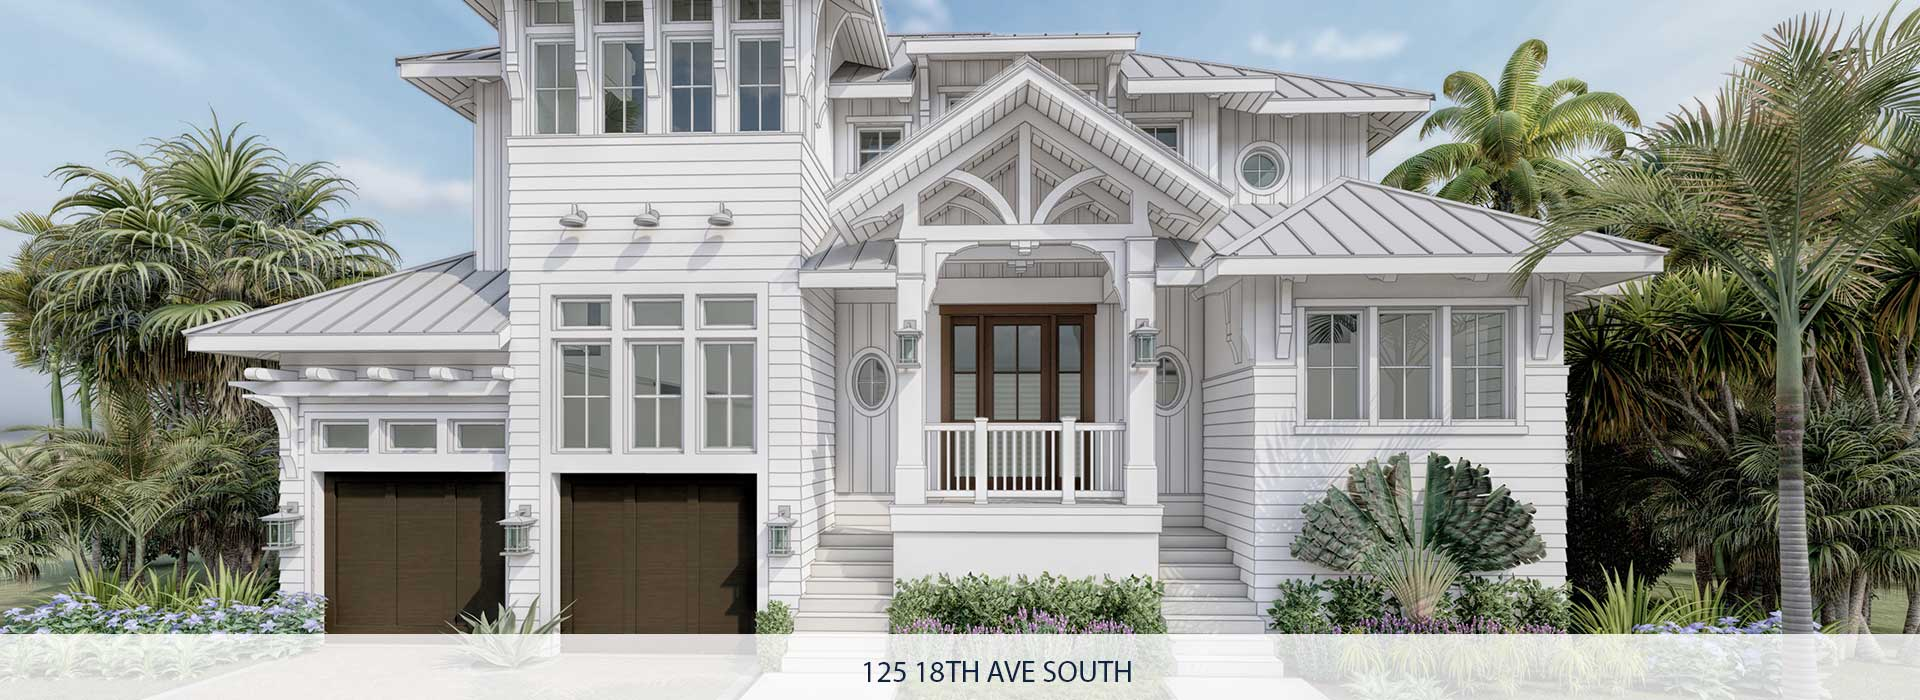 125 18th Avenue South | Griffin Builders - Naples, Florida